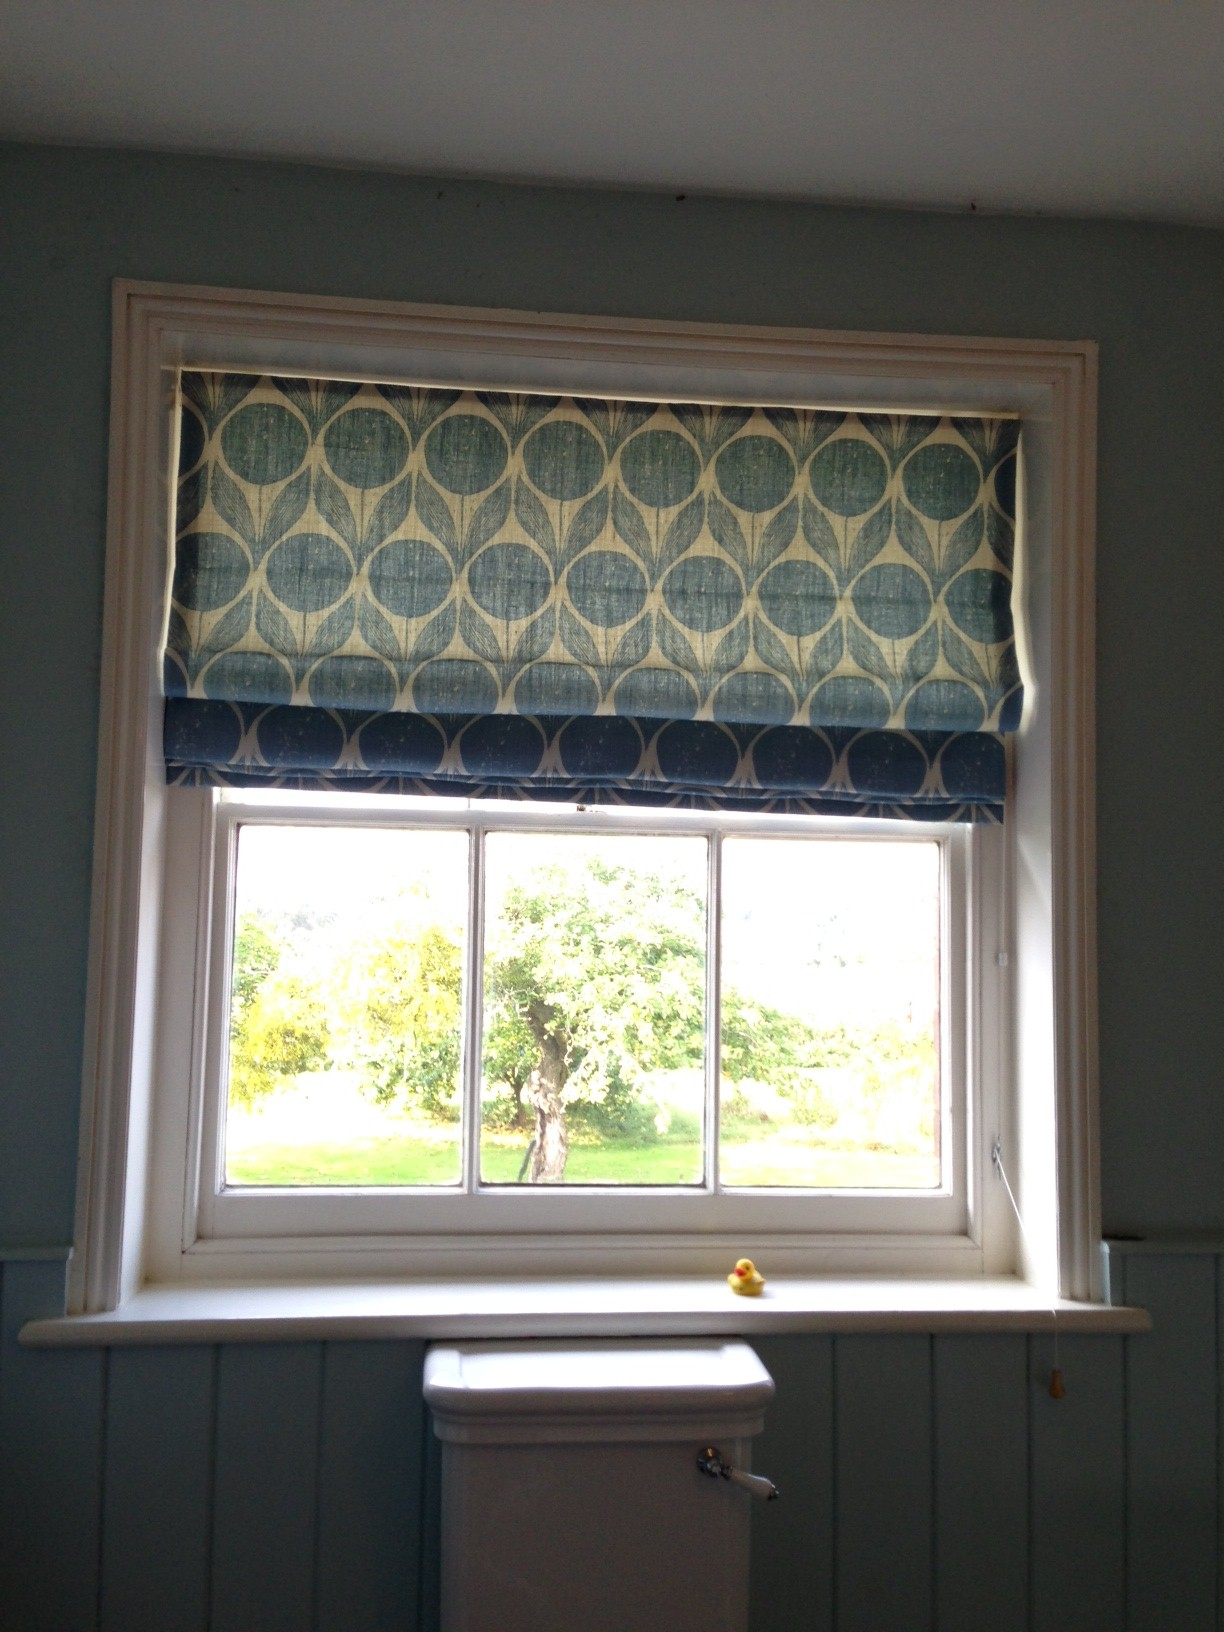 Roman blind in Romo Suvi Dresden blue